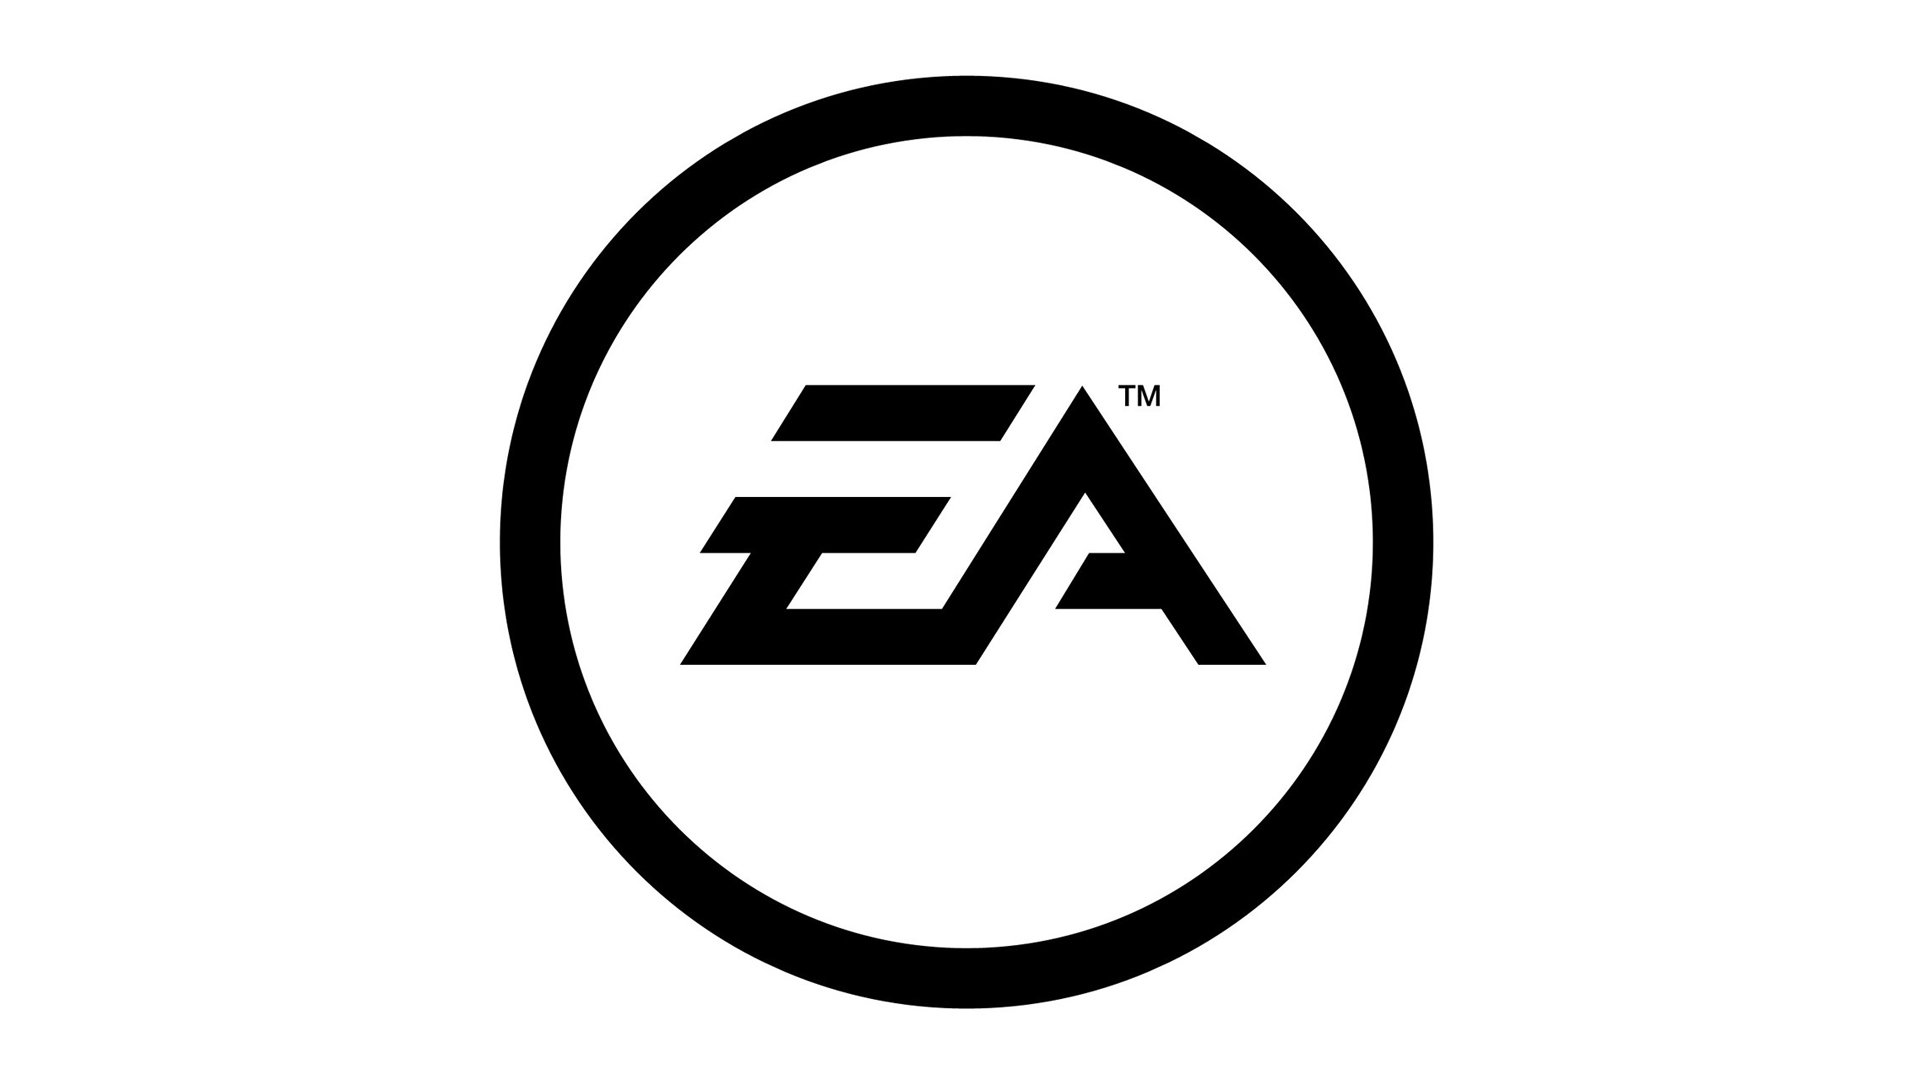 ea-electronic-arts